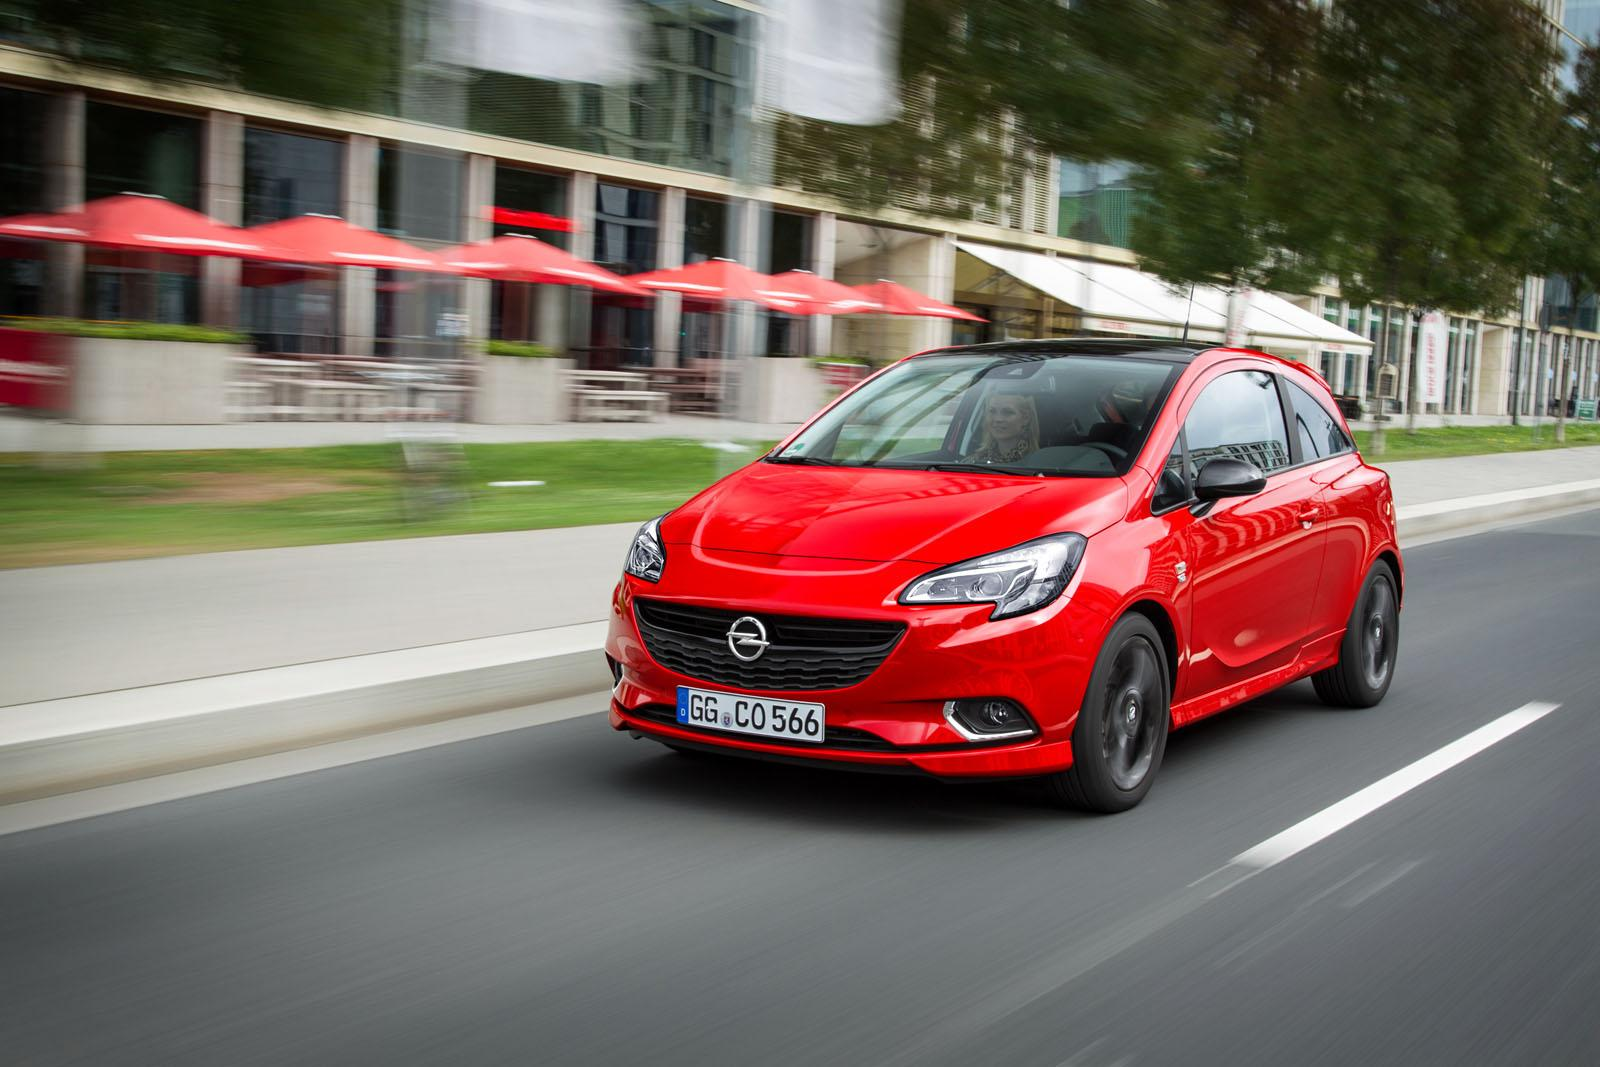 2015 Opel Corsa Receives OPC Line Treatment - autoevolution